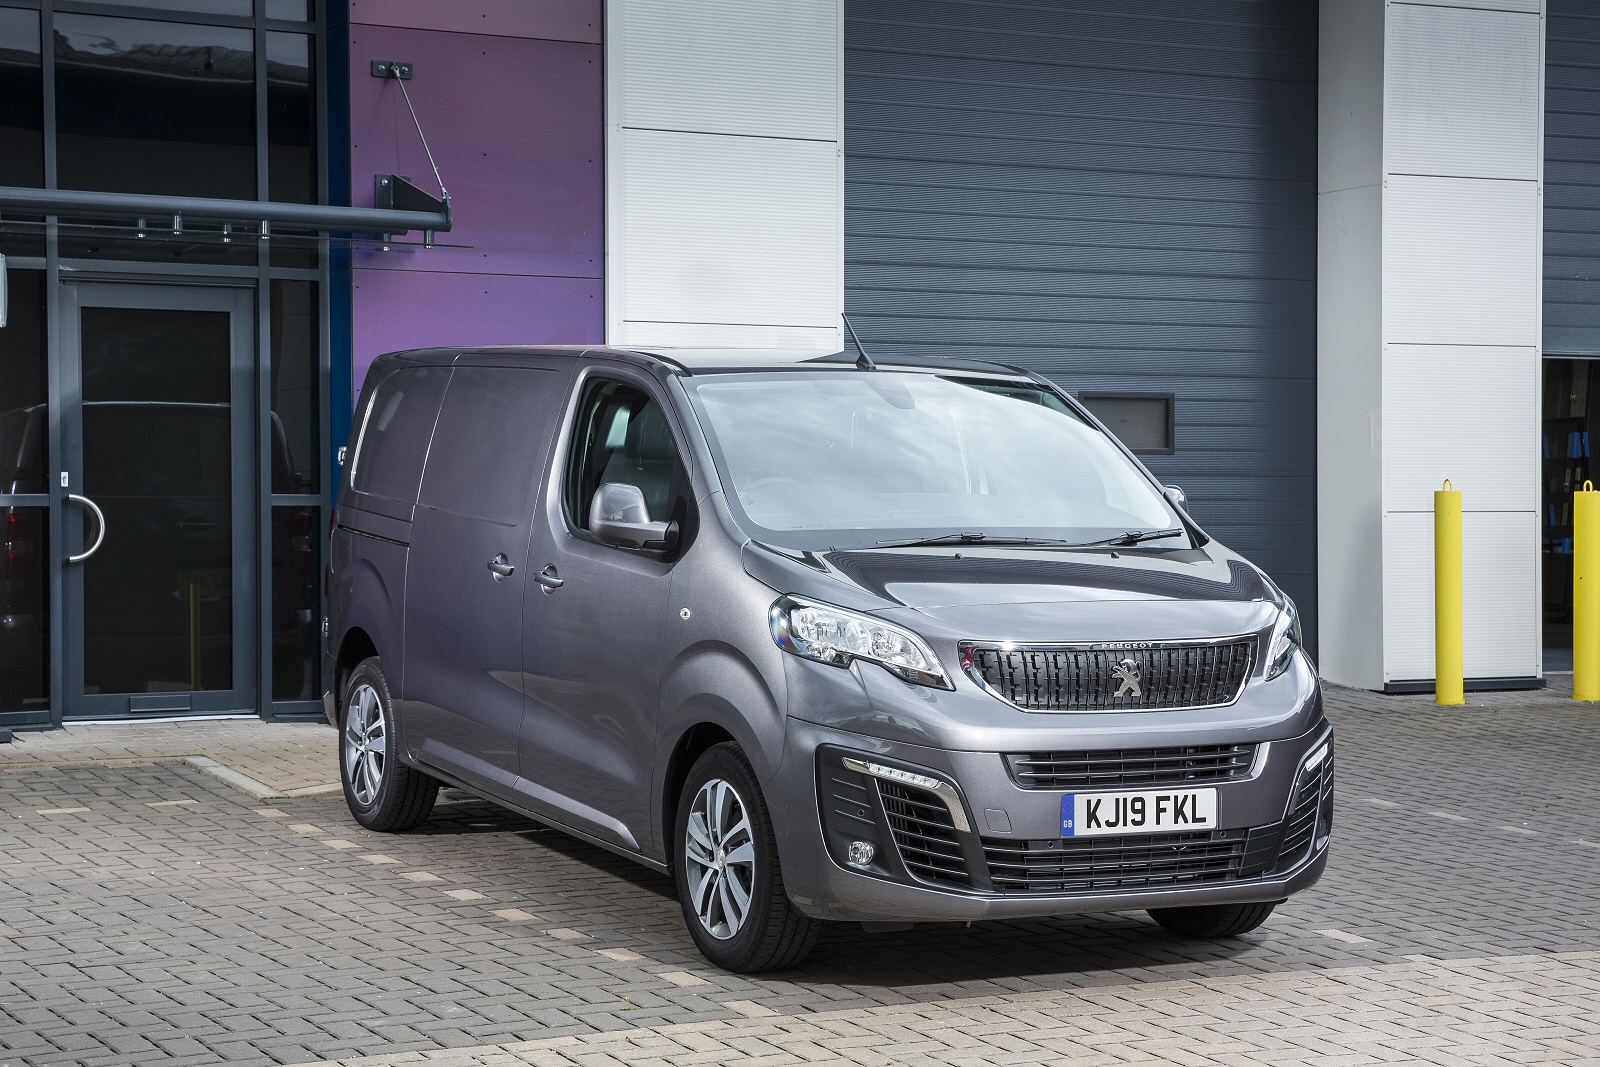 c45bf7e3b8 New Peugeot Expert Compact Diesel 1000 1.6 BlueHDi 95 Professional Van for  Sale